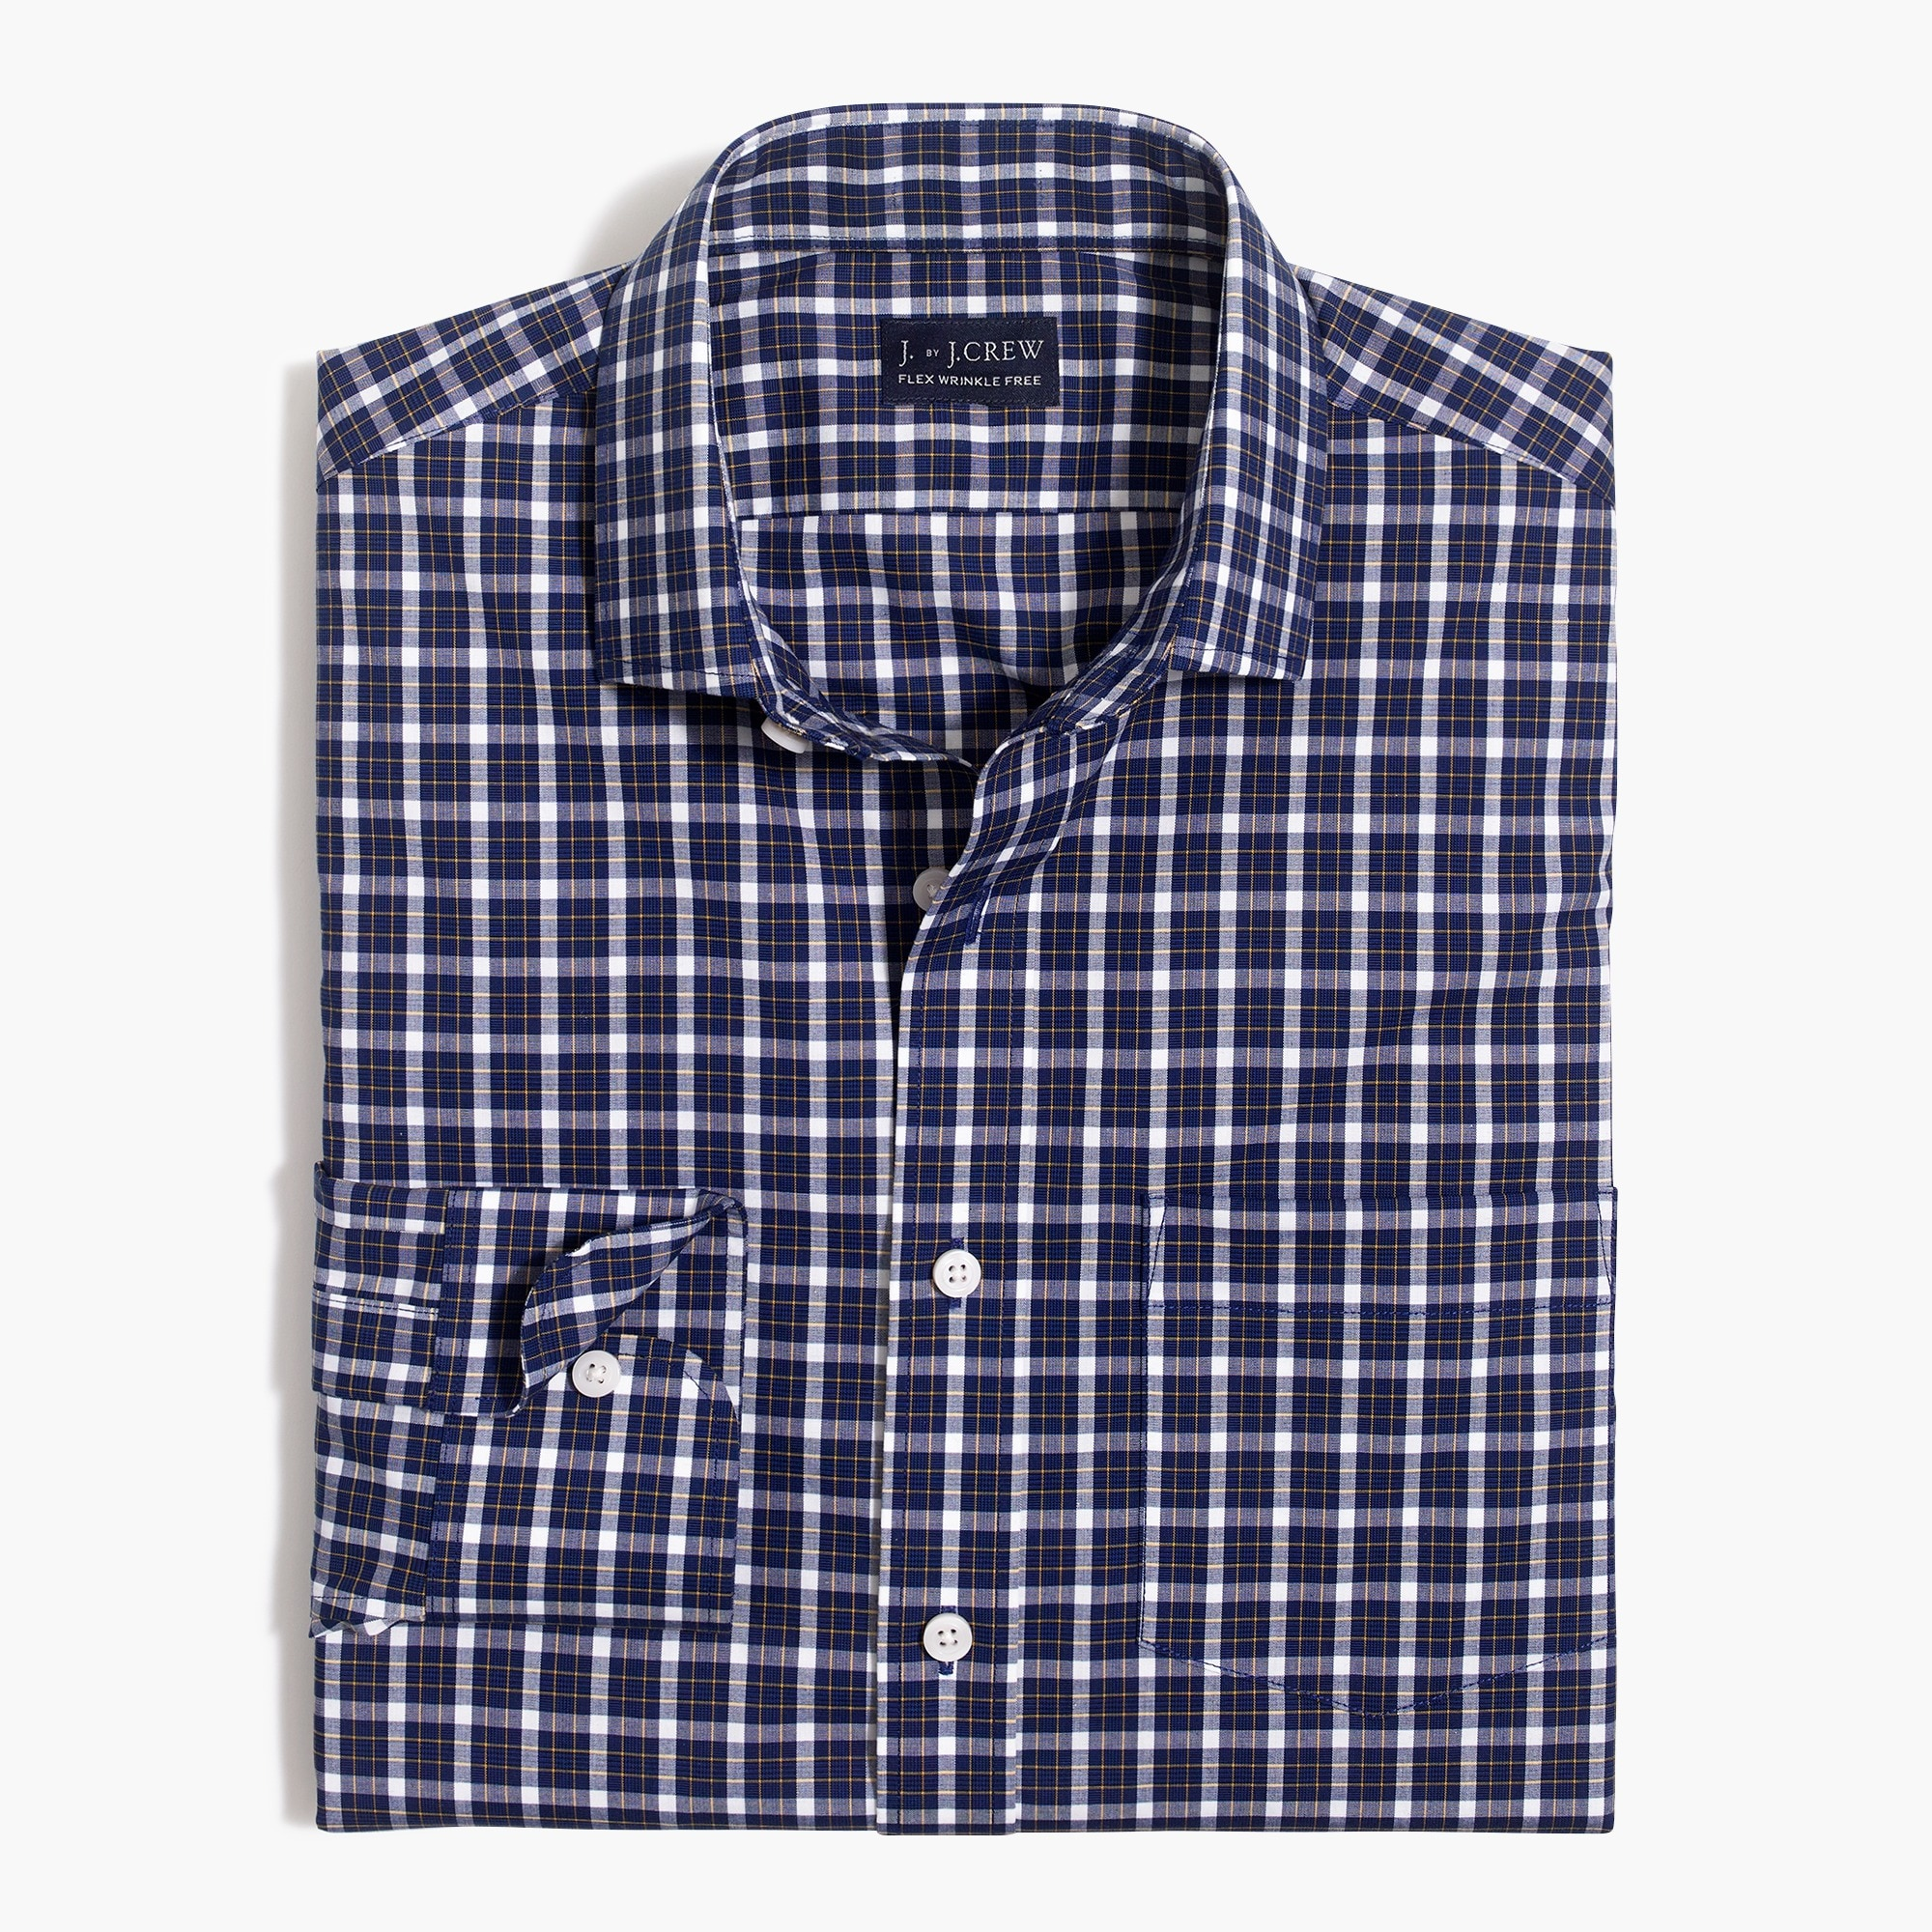 slim thompson flex wrinkle-free dress shirt : factorymen wrinkle-free dress shirts